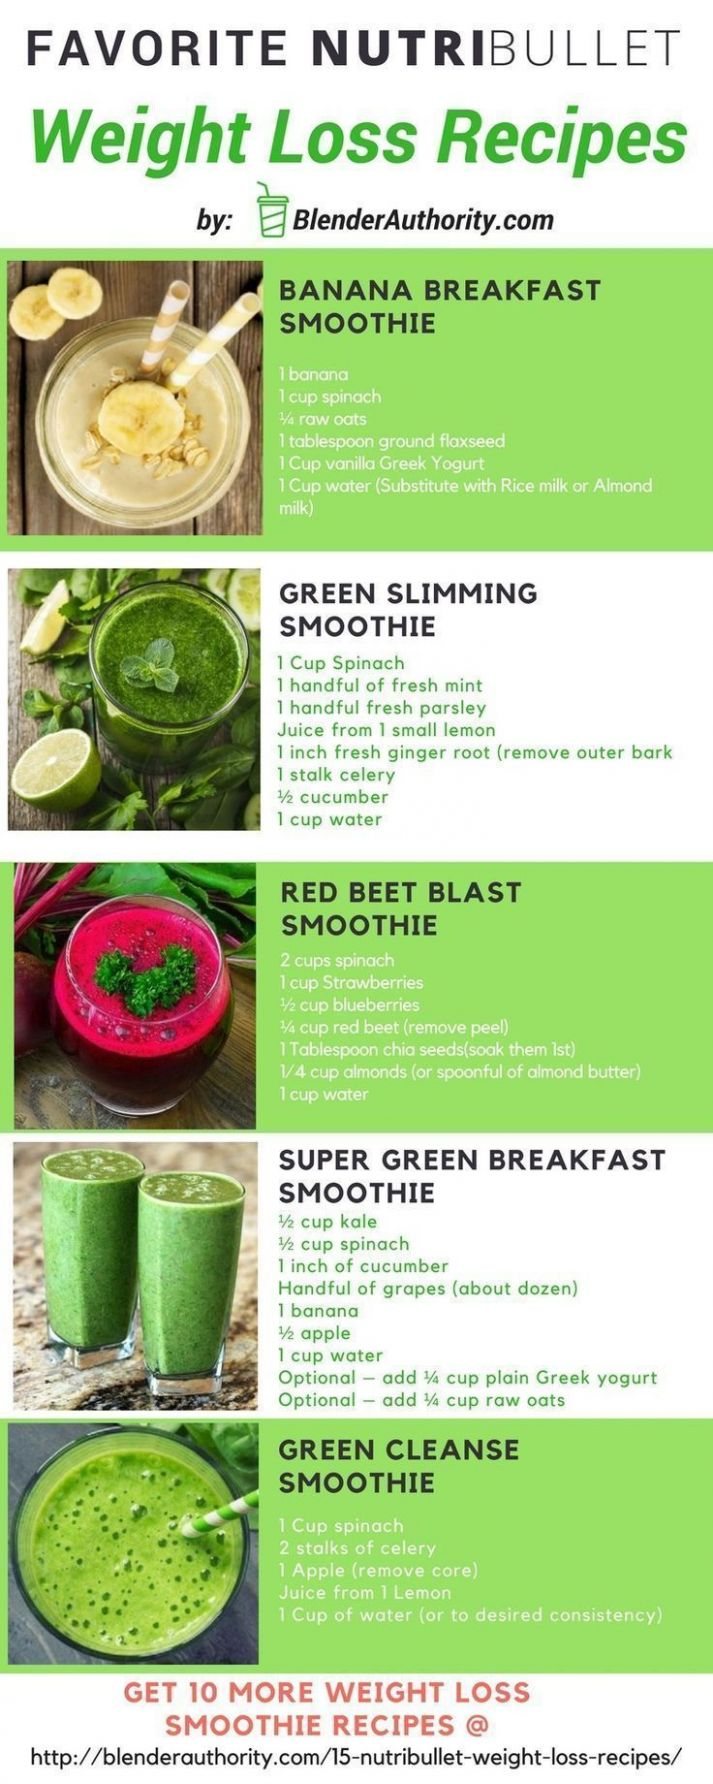 Pin on Weight Loss Smoothies - Breakfast Juice Recipes Weight Loss